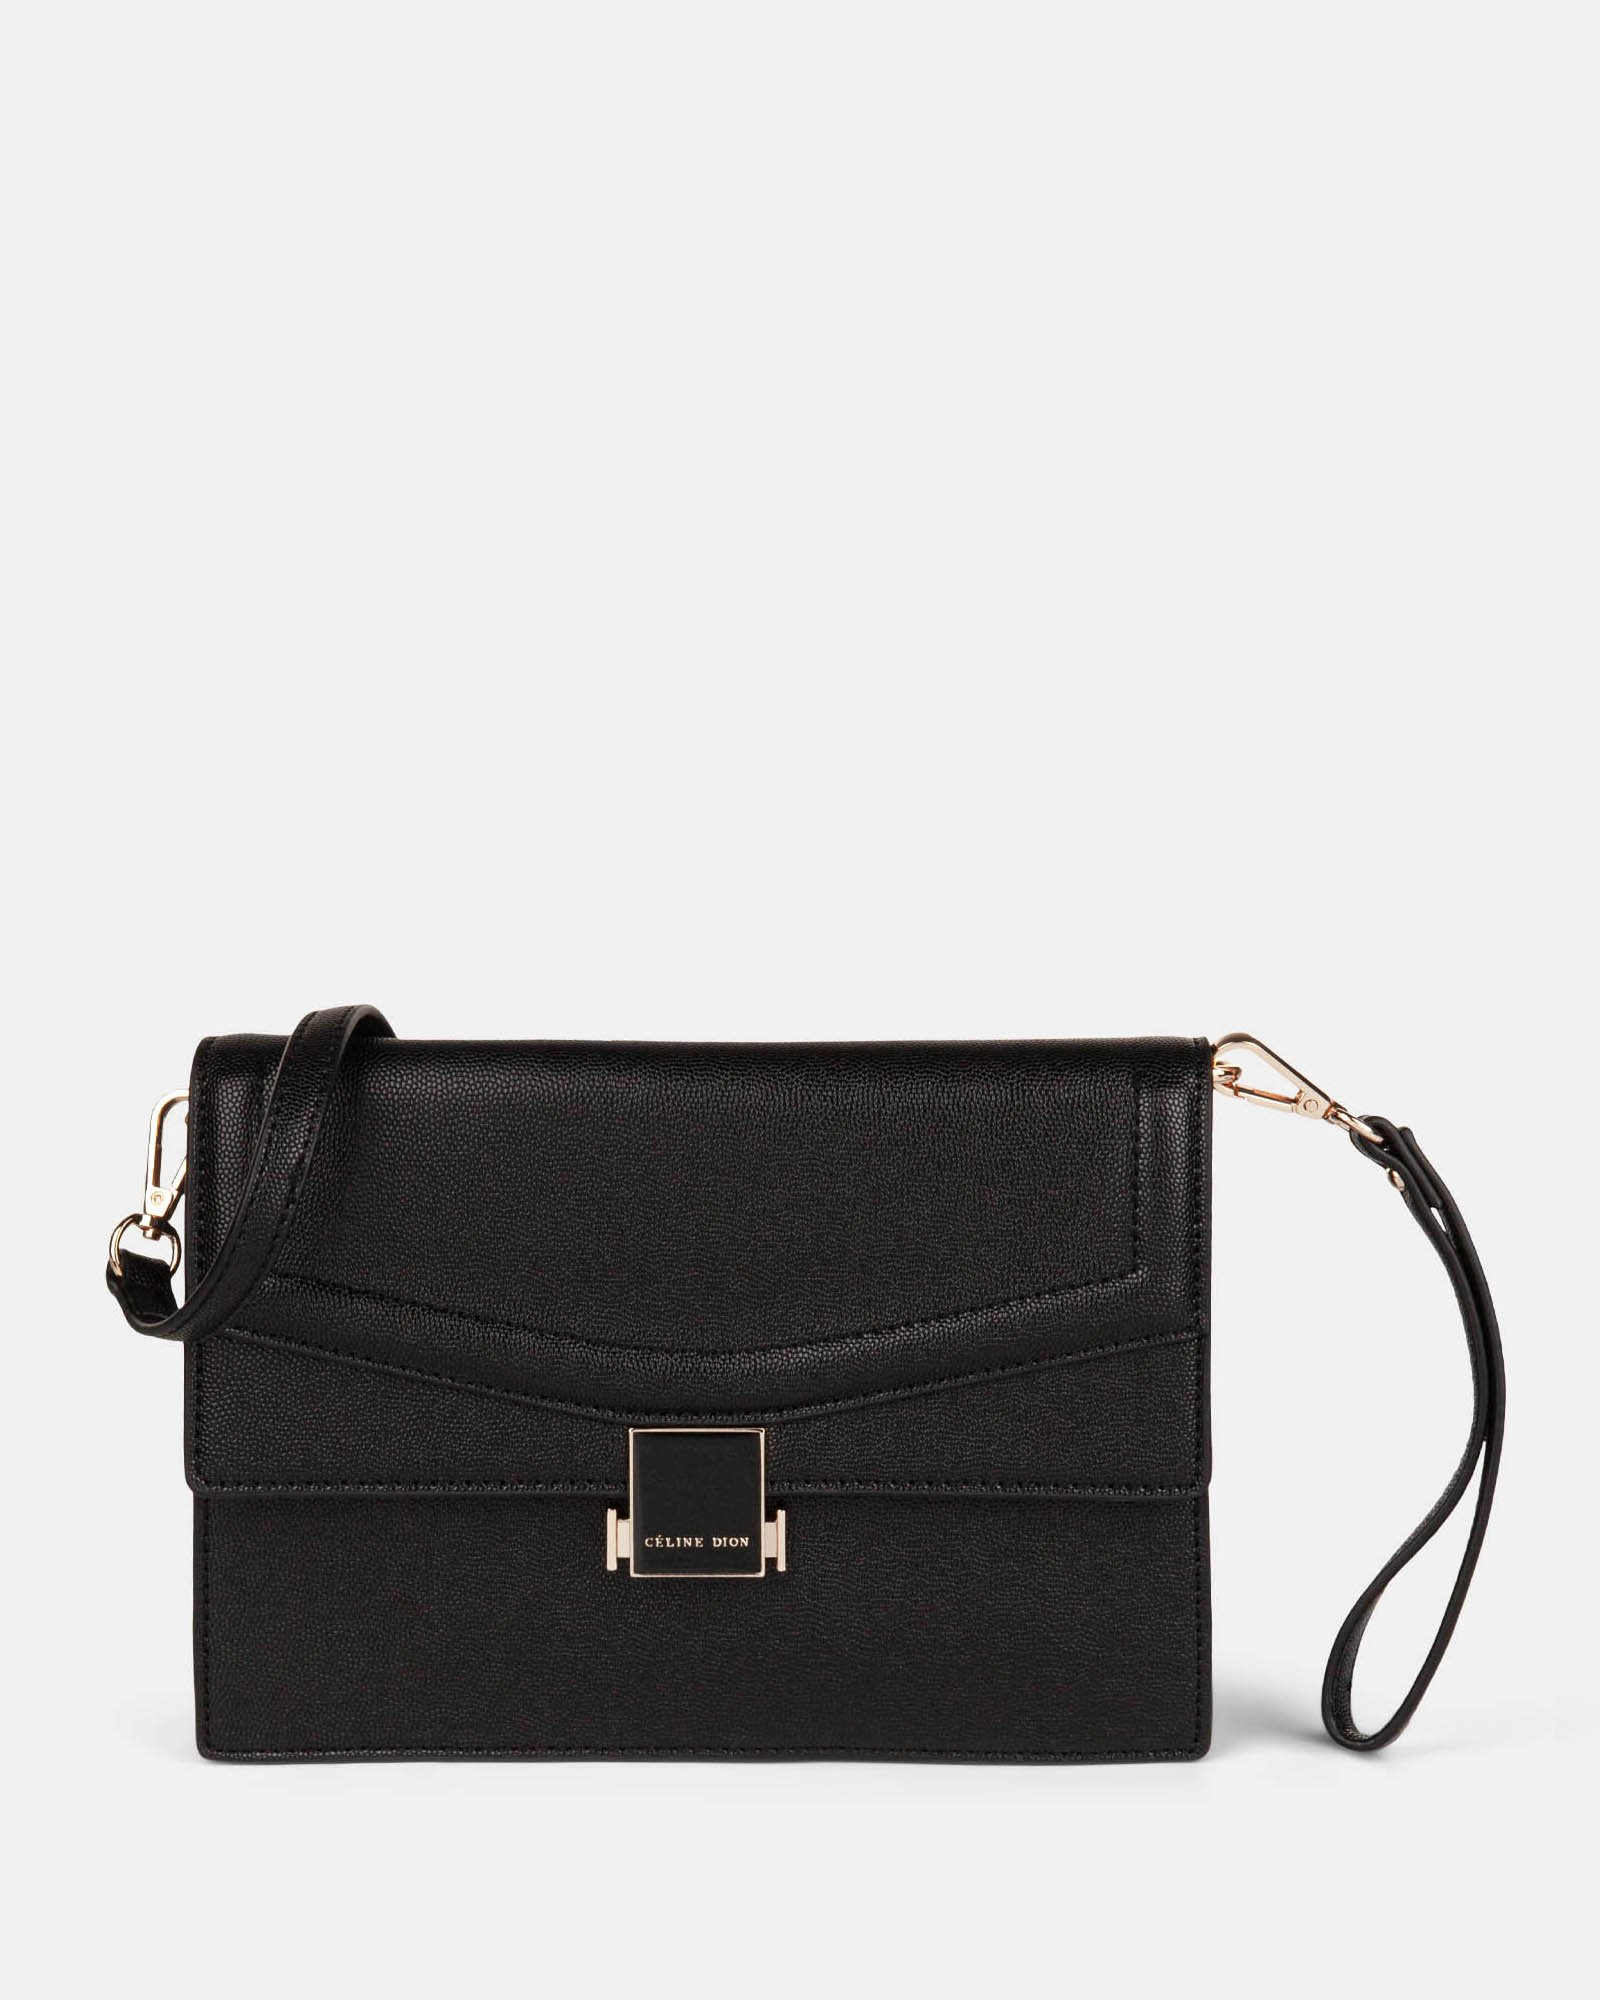 Scale – Leather-like clutch bag - Black - Céline Dion - Zoom